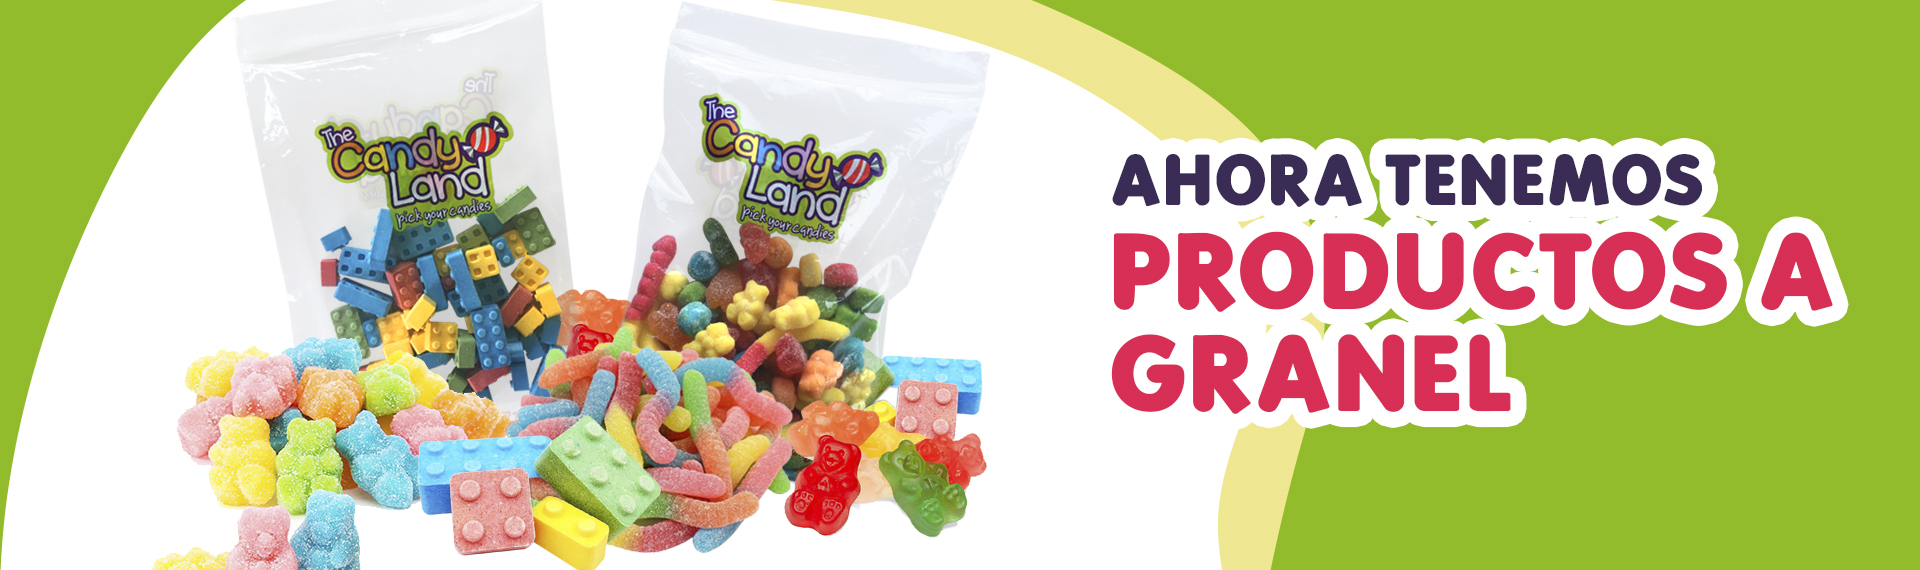 banner-productos granel